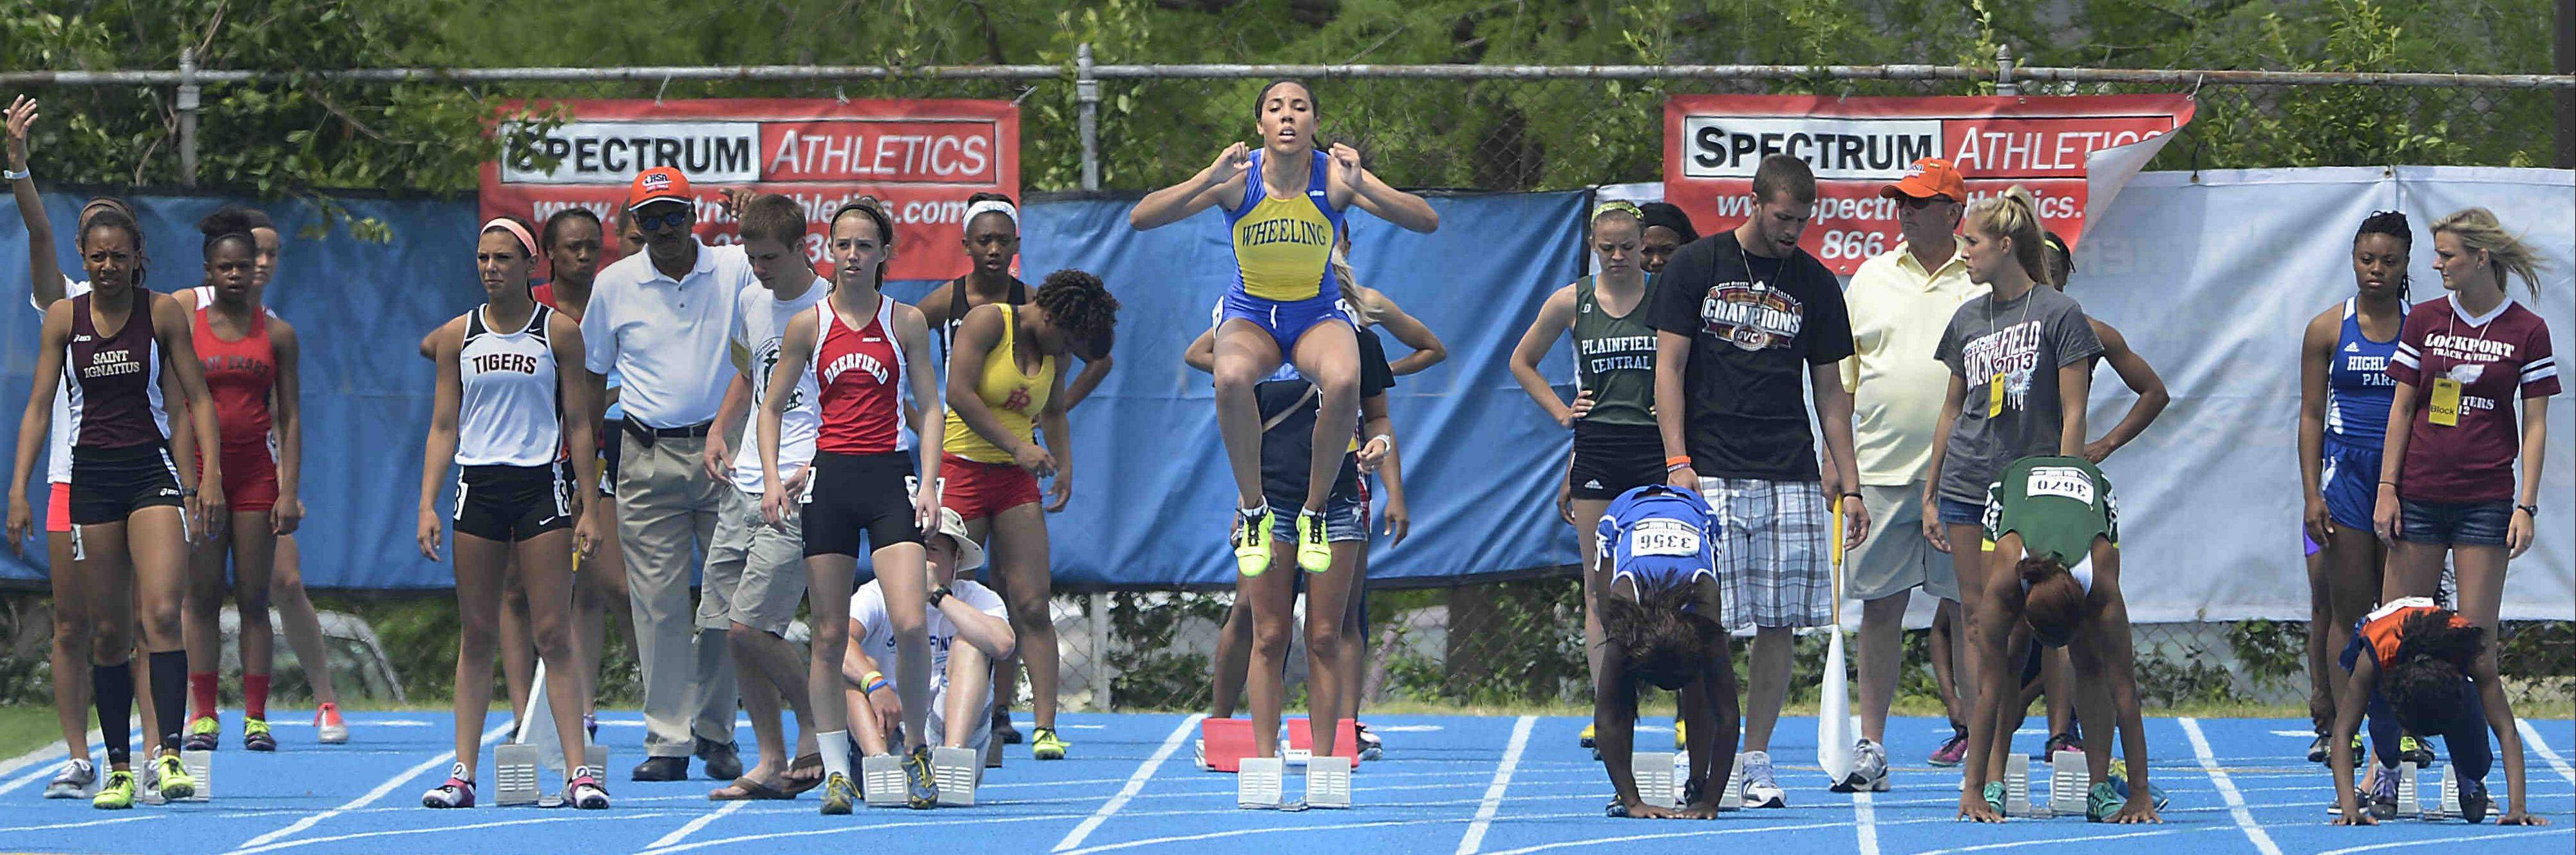 As the other competitors step into their starting blocks for the 100-meter dash, Wheeling�s Sydney Keith jumps up Friday at the Class 3A girls state track and field preliminaries at Eastern Illinois University.